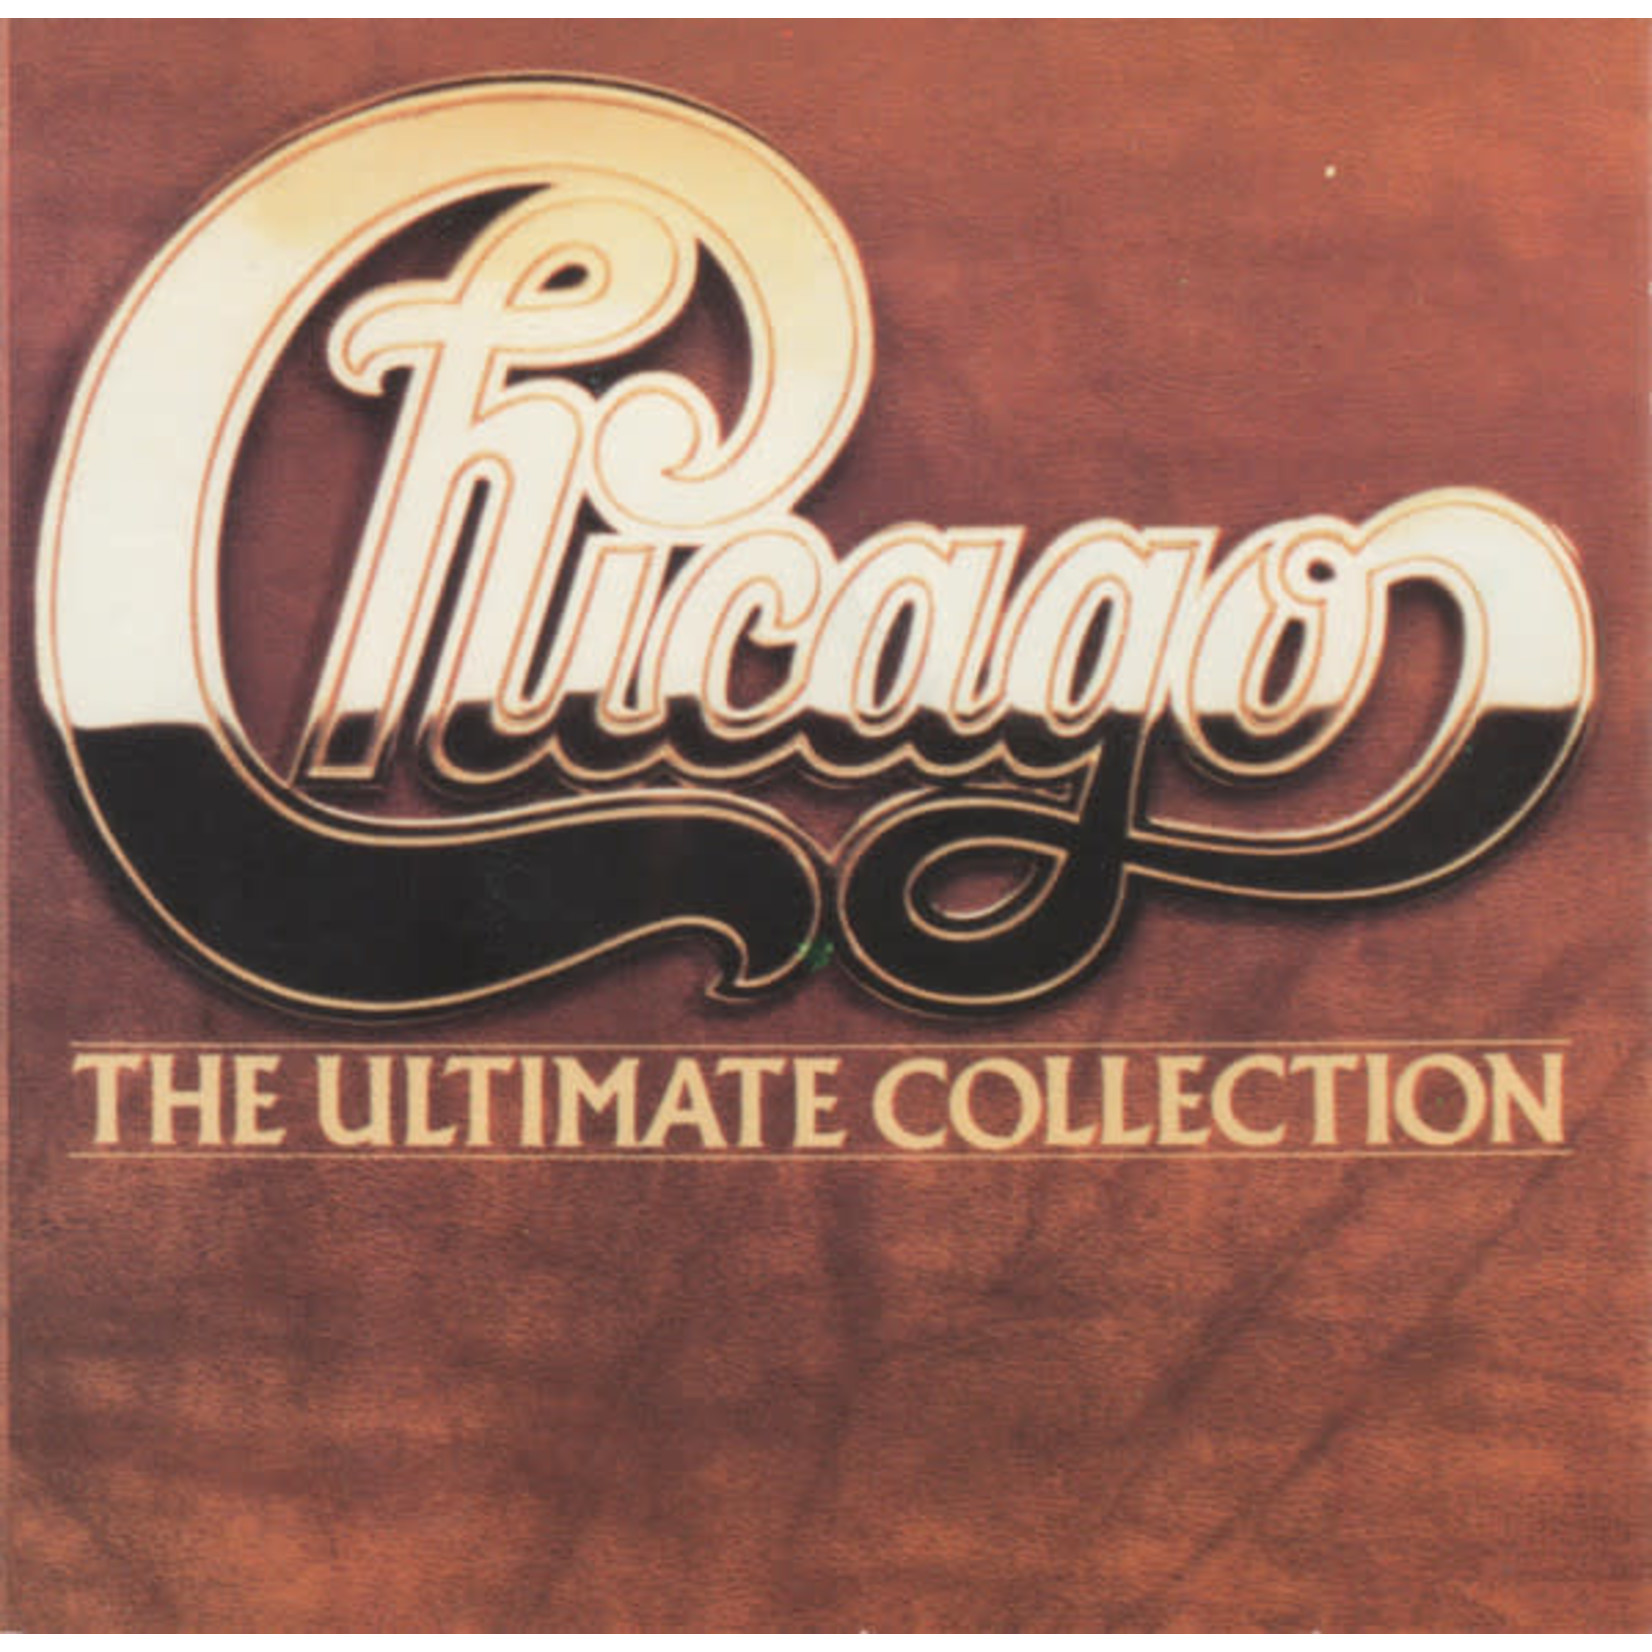 [Vintage] Chicago: The Ultimate Collection